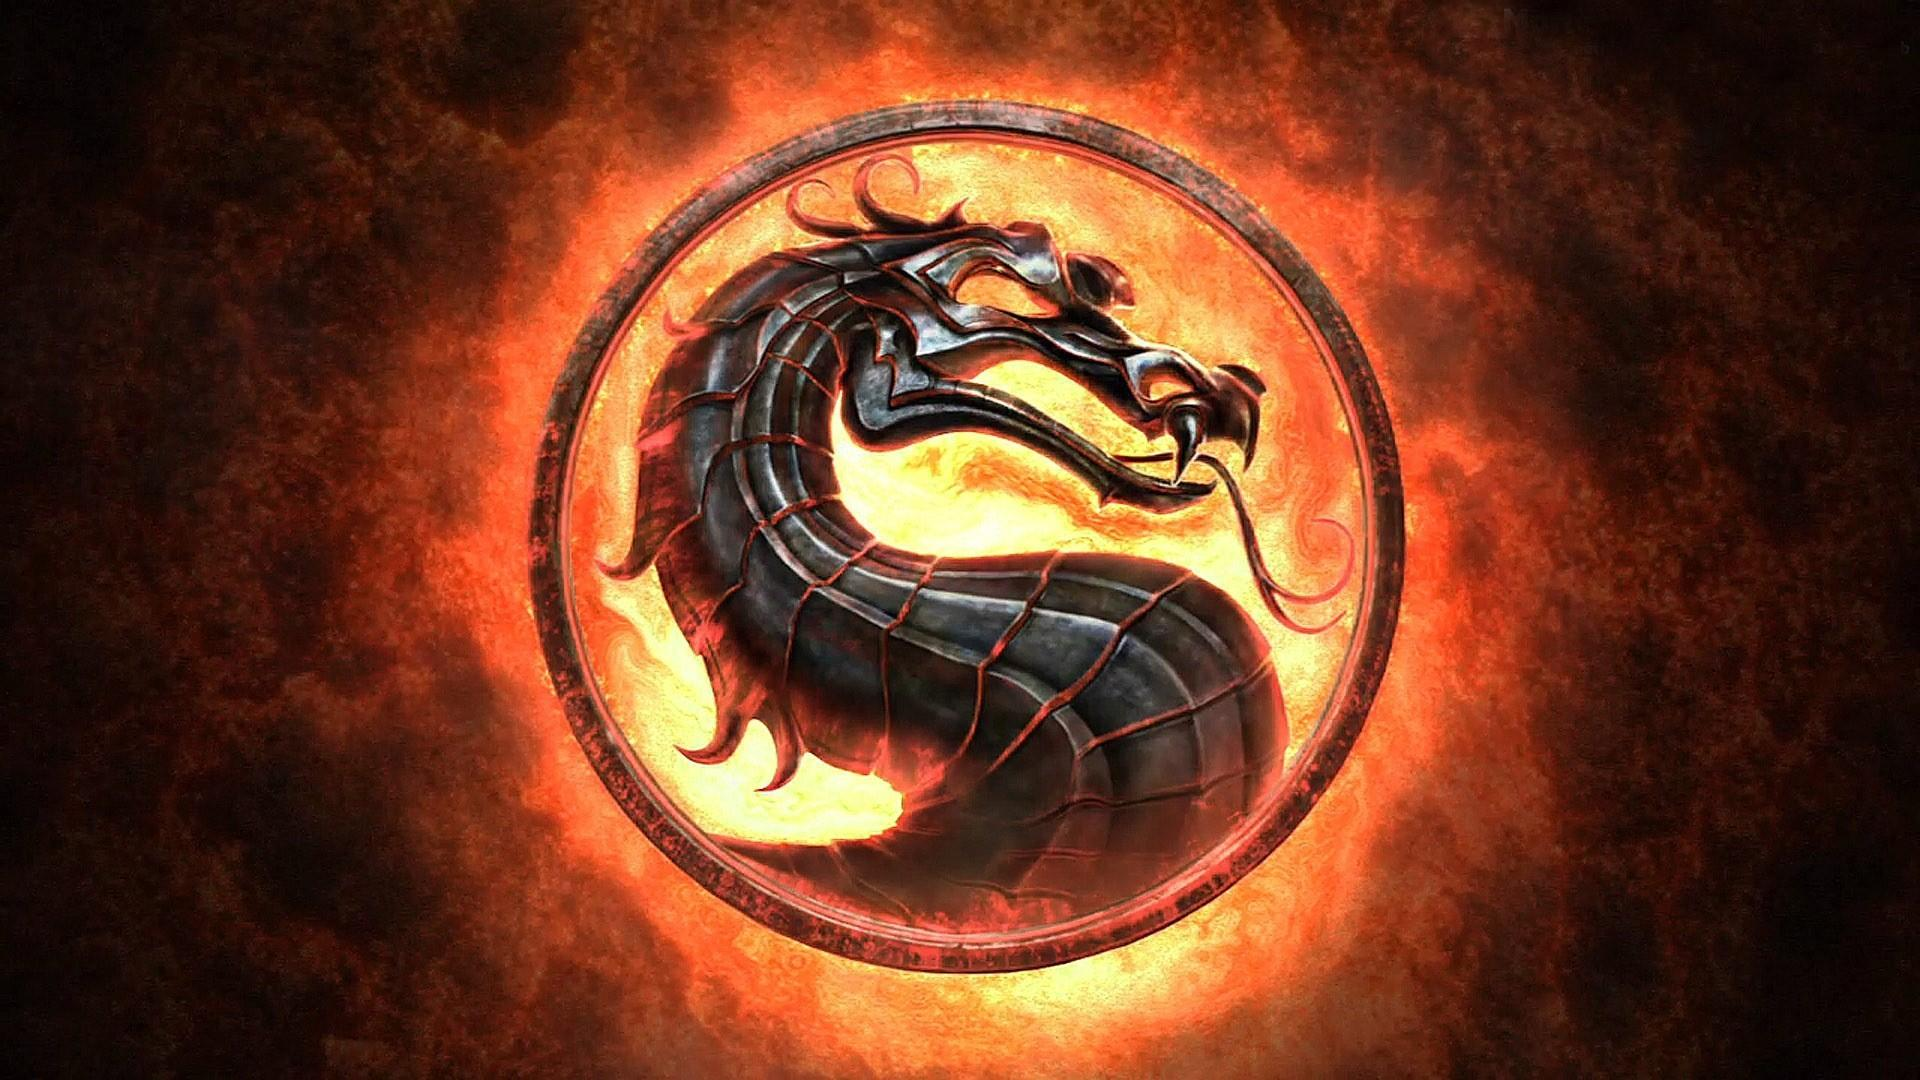 Mortal Kombat Logo Wallpapers Top Free Mortal Kombat Logo